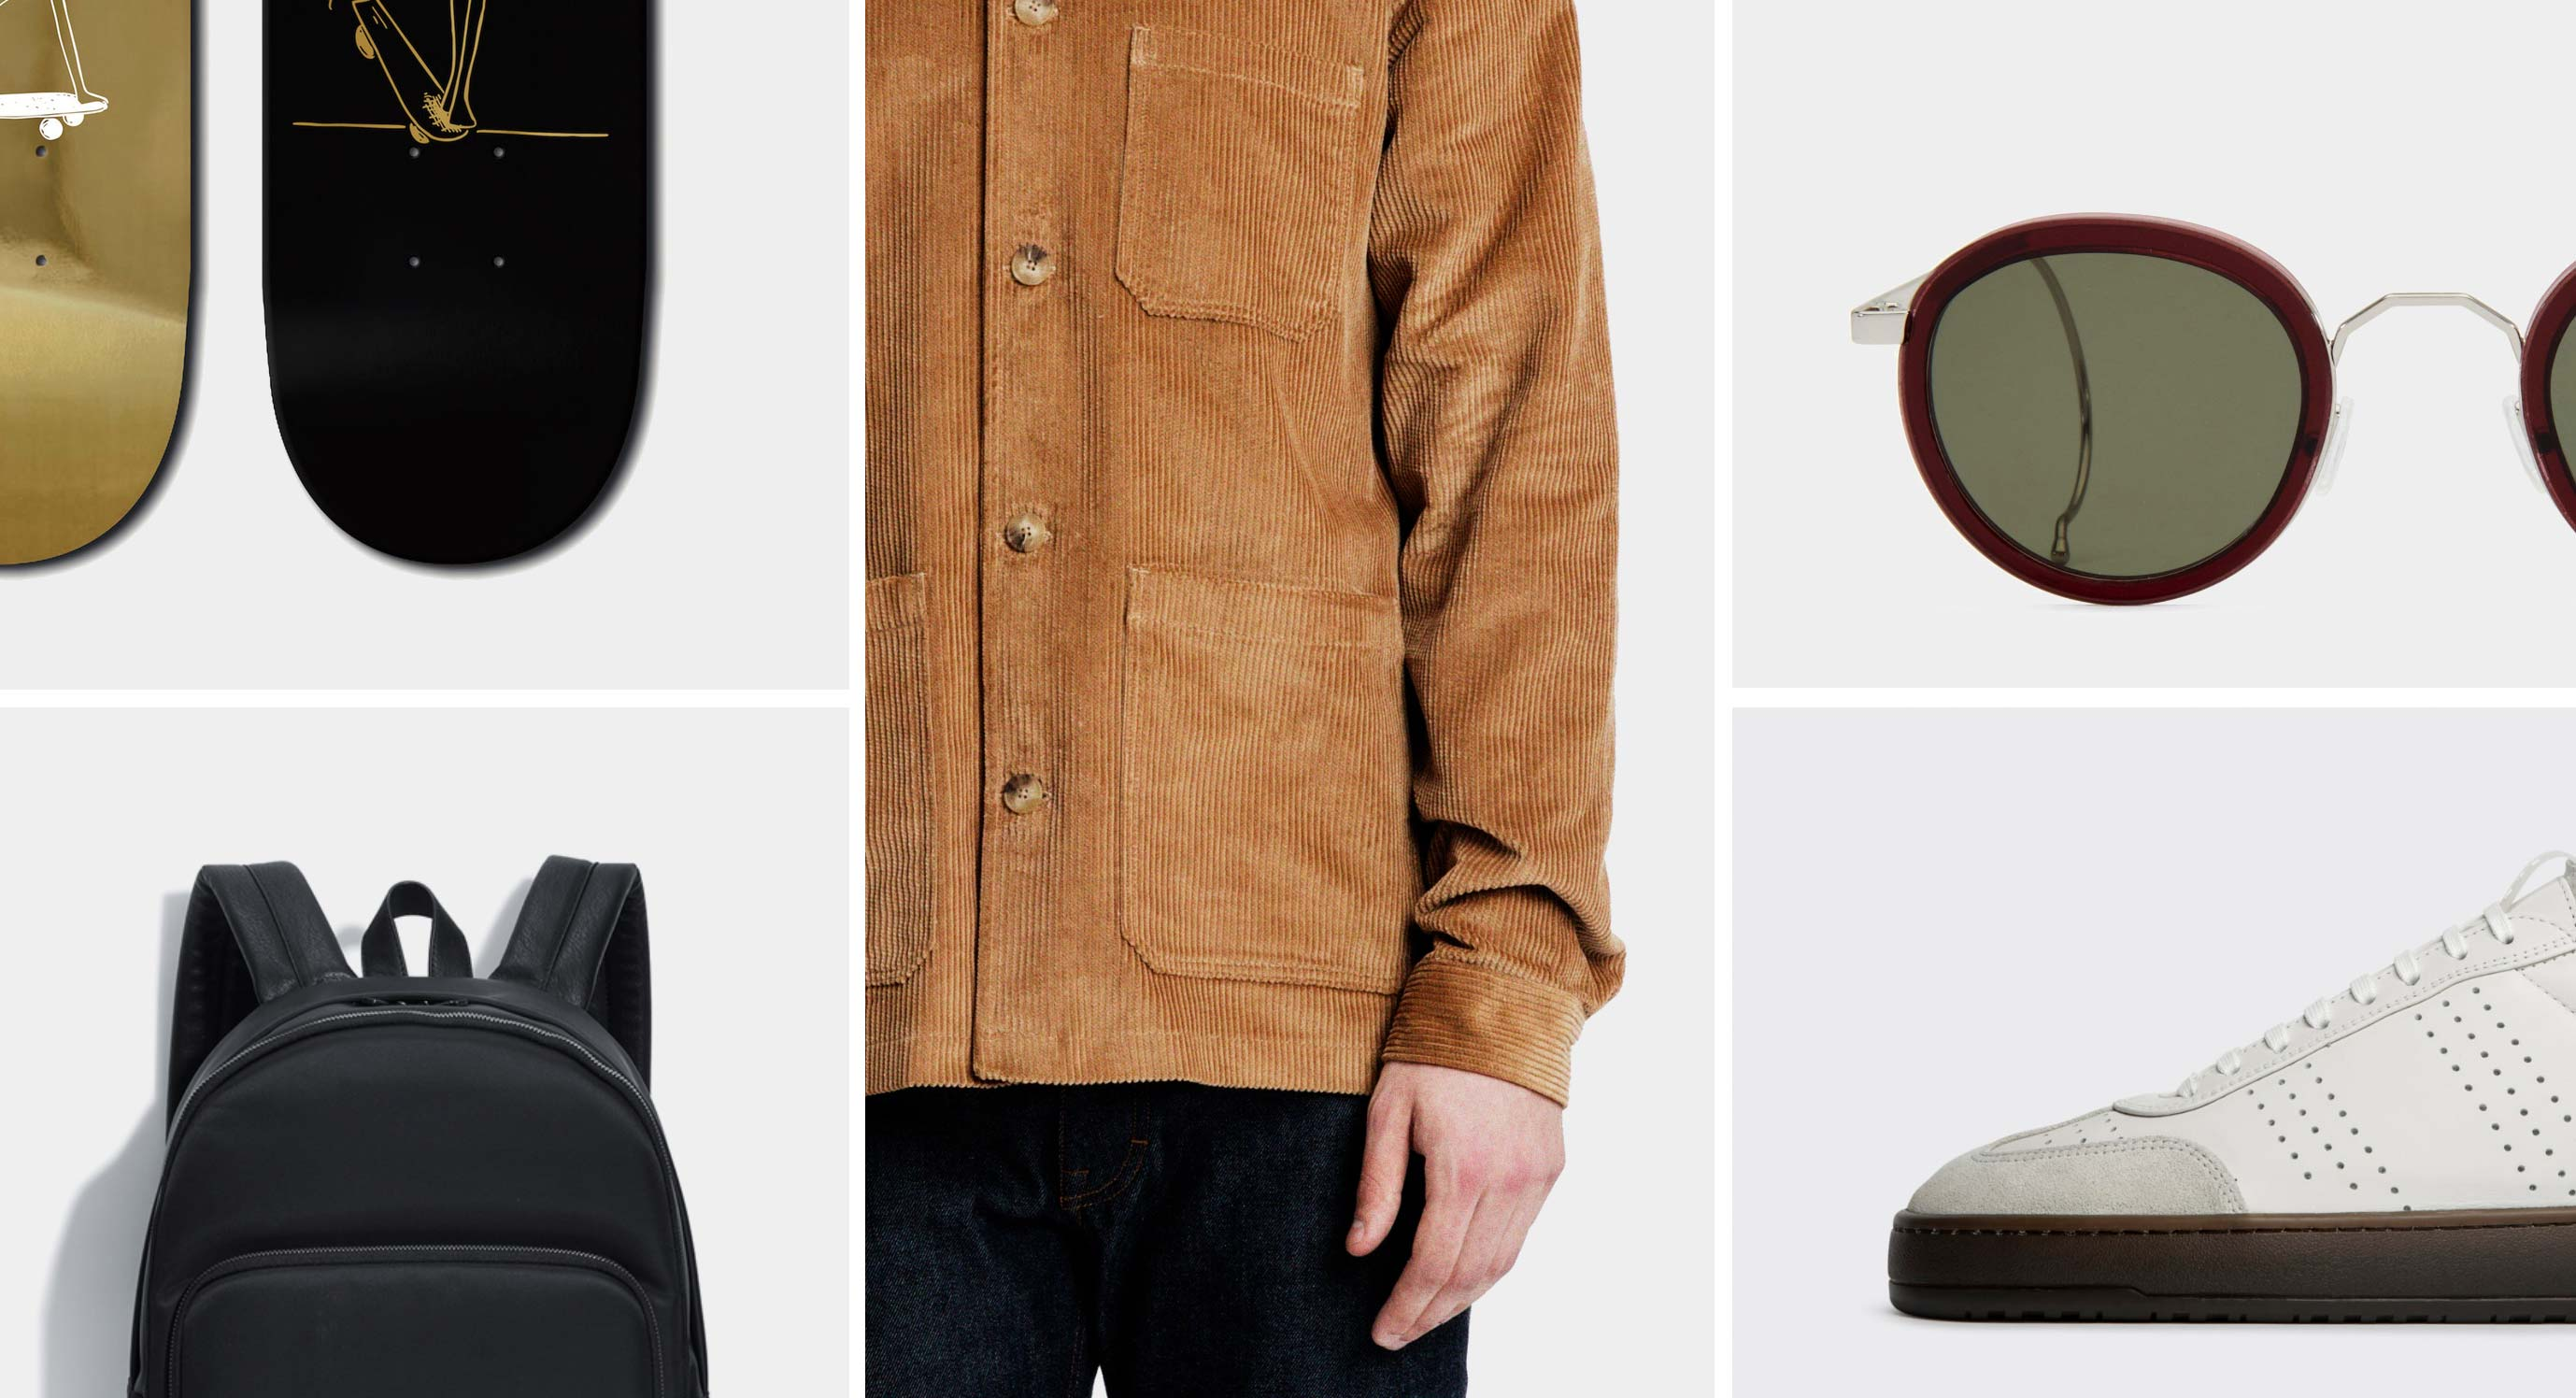 The Top 5 Items Top Drop This Week